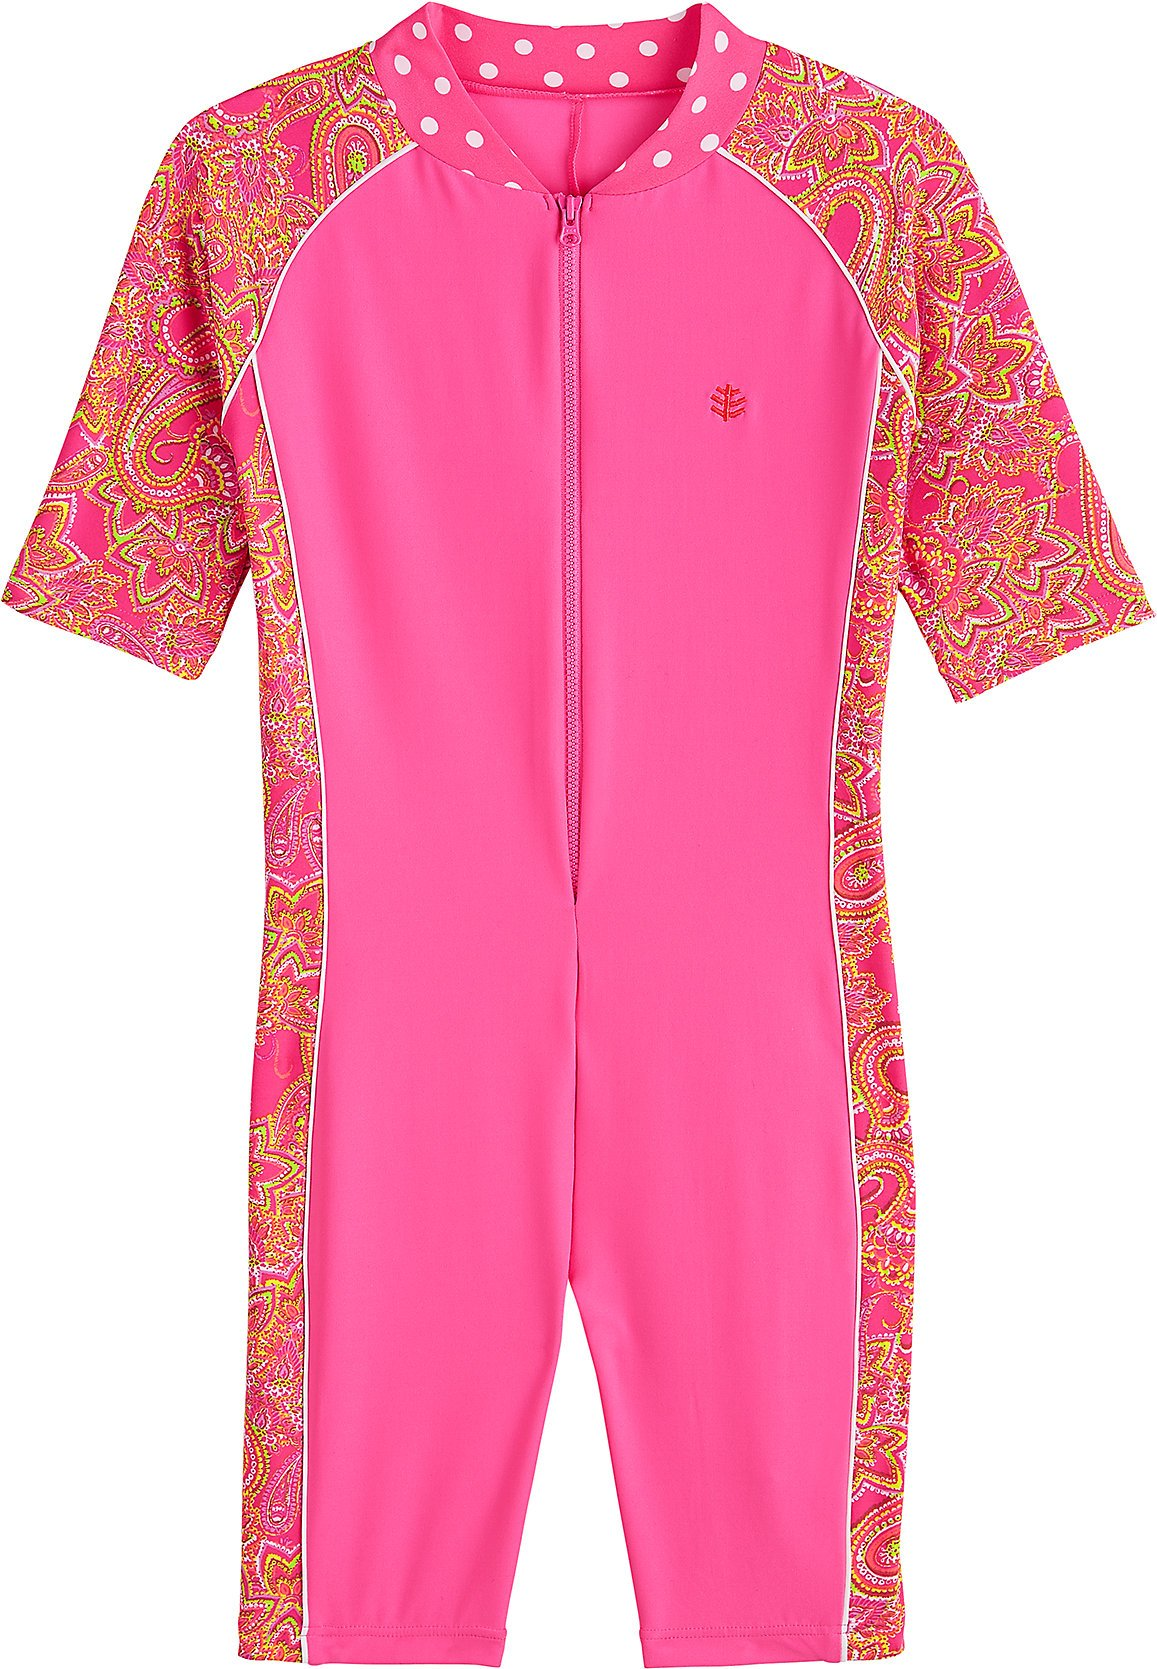 Coolibar UPF 50+ Kids' Neck-To-Knee Surf Suit - Sun Protective (Large- Pink Paisley)